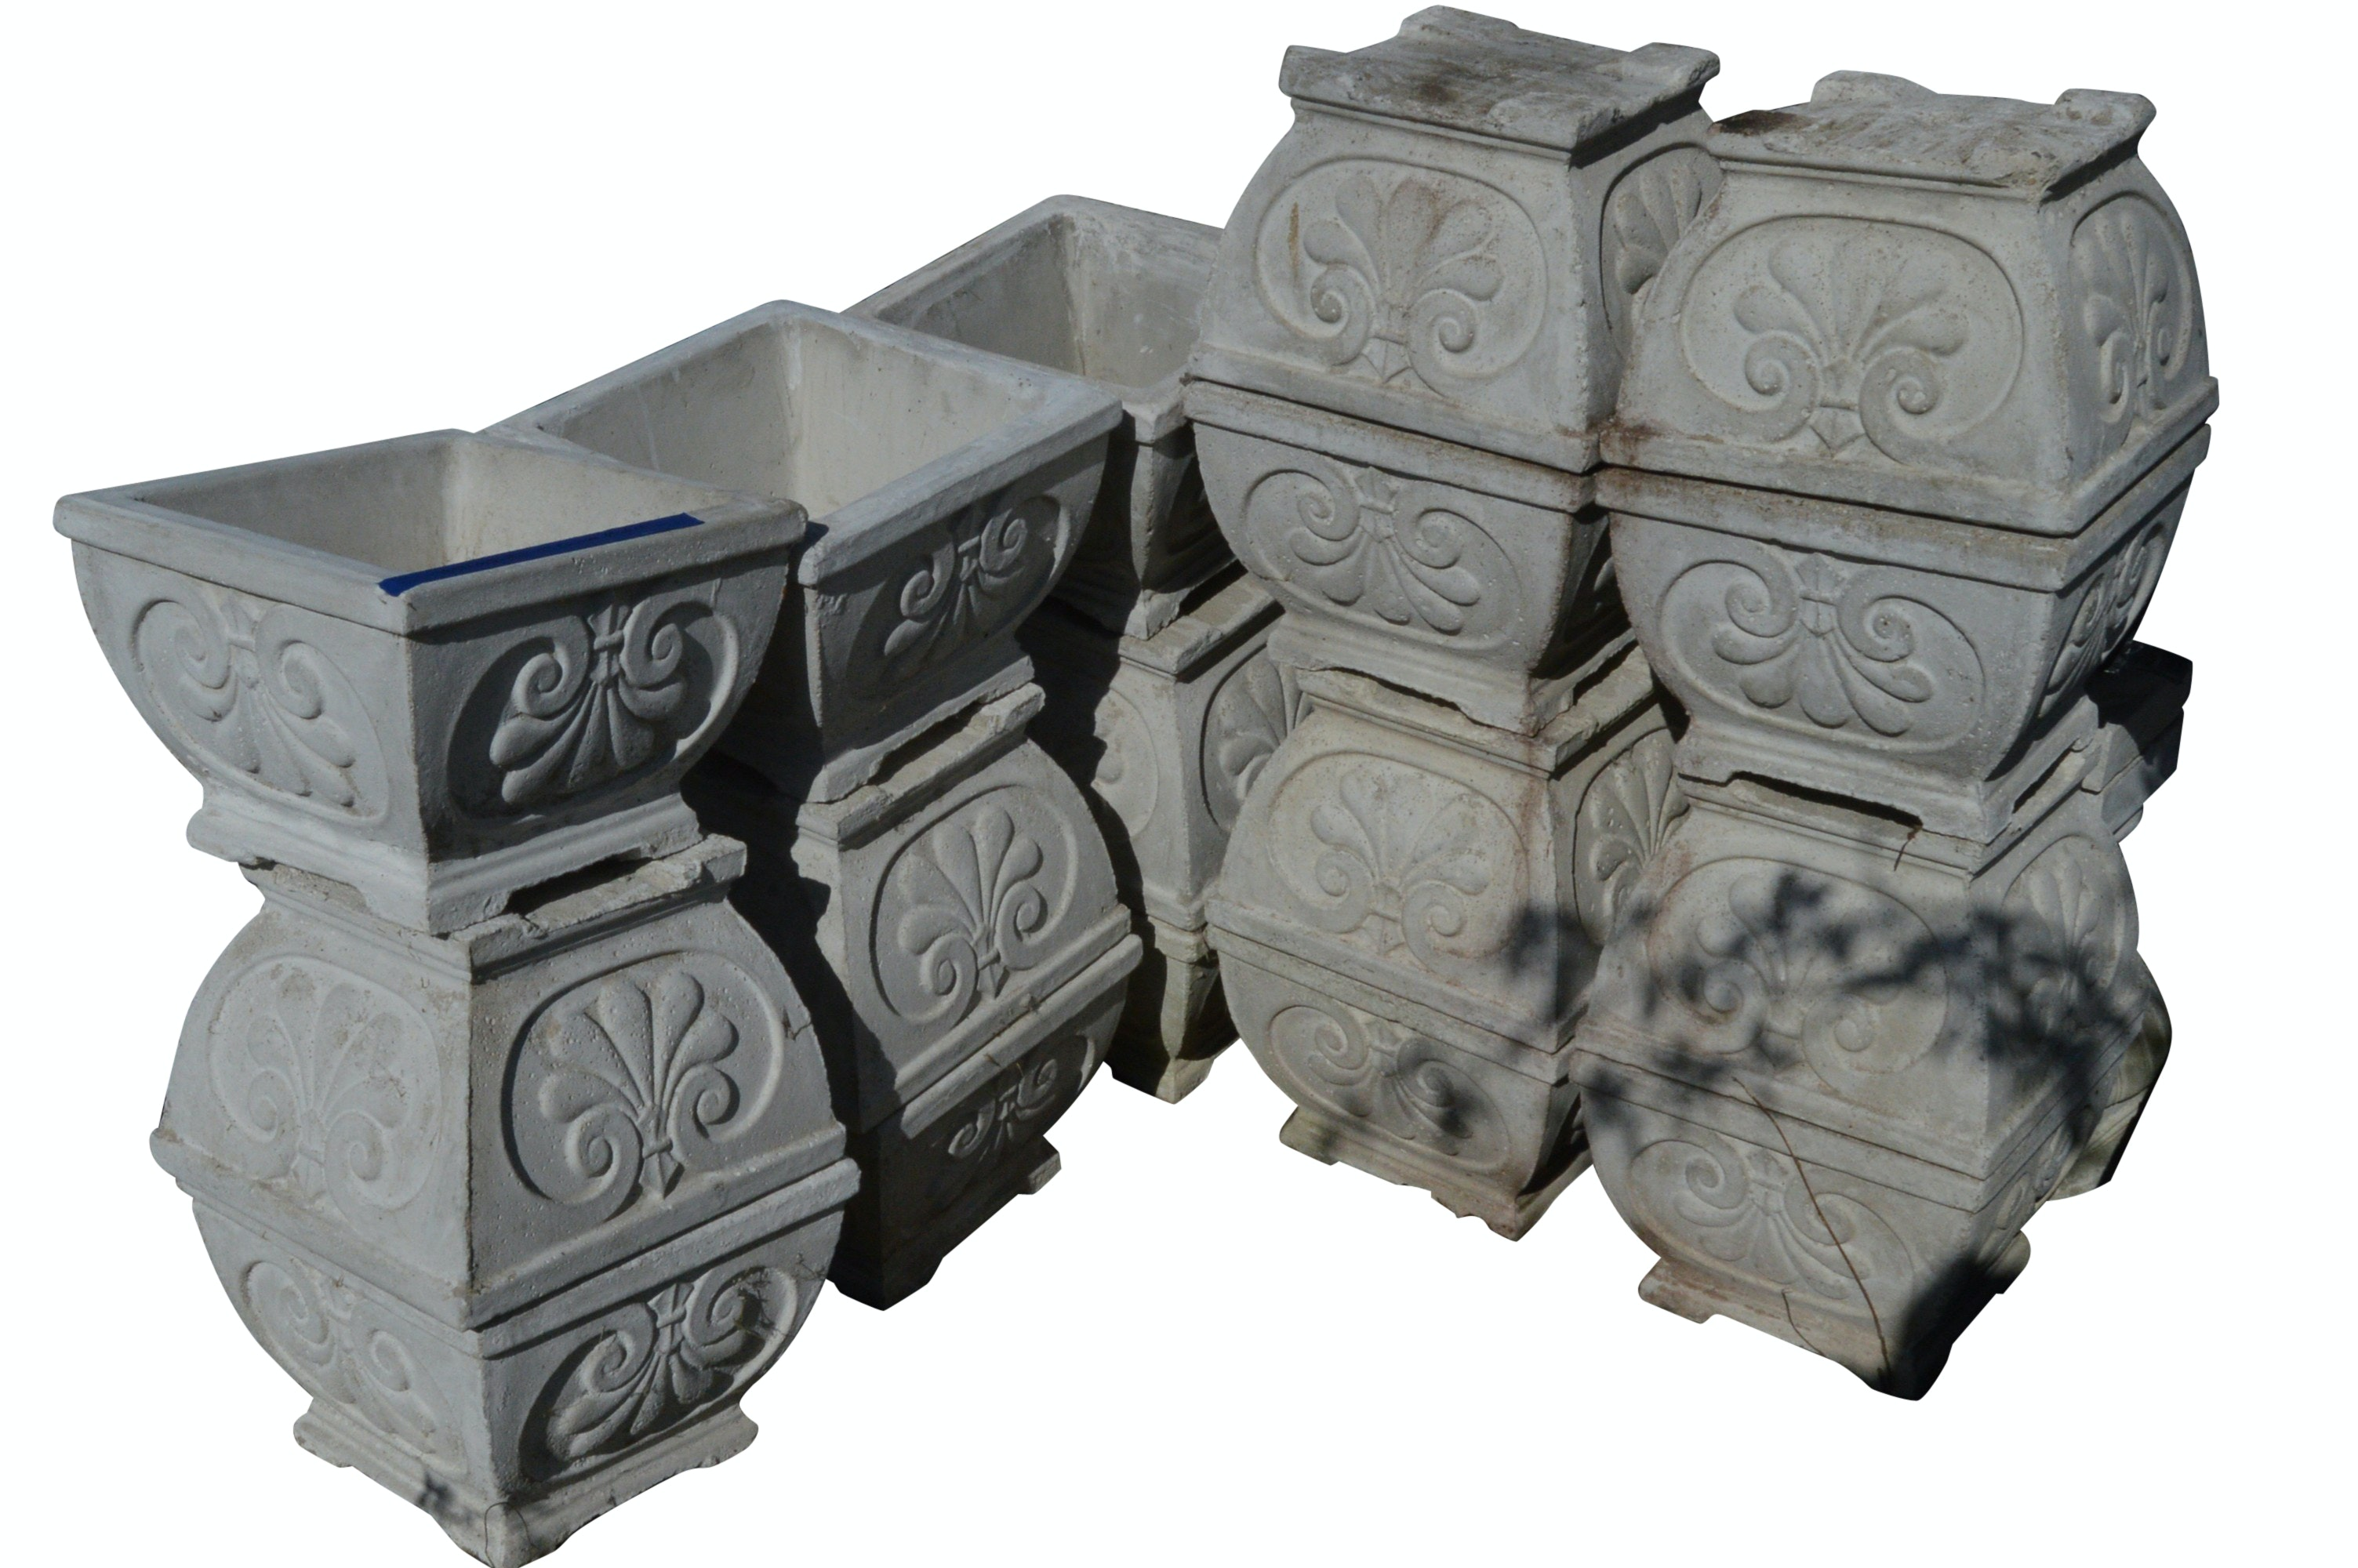 Footed Concrete Planters